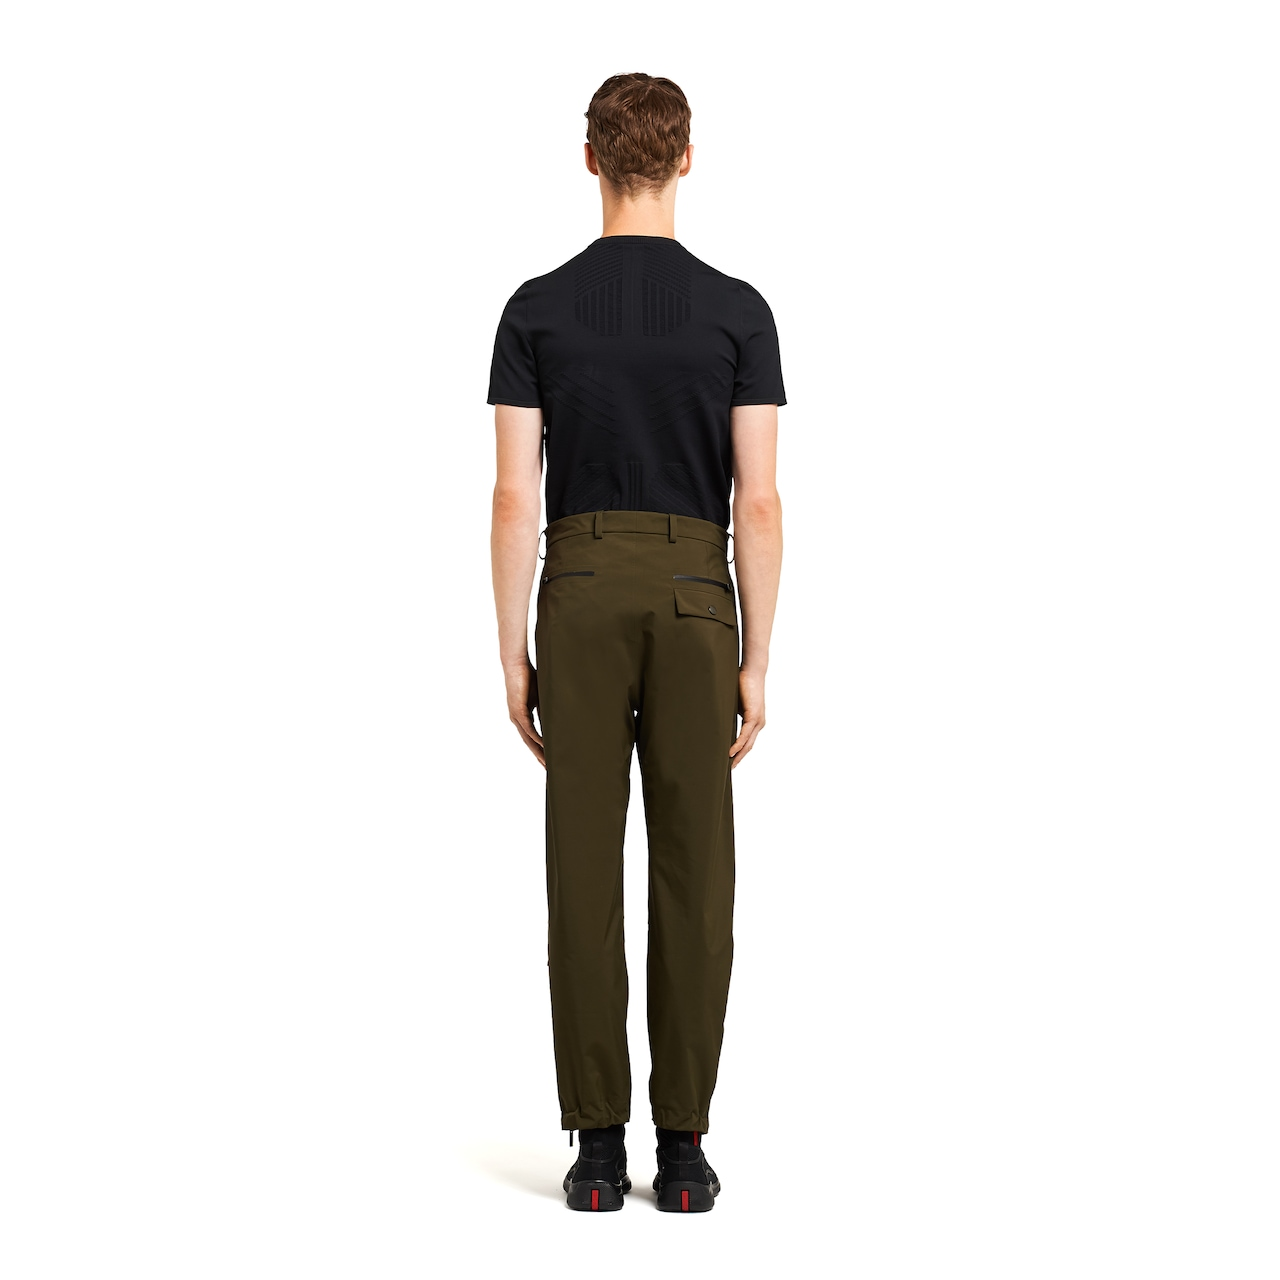 LR-MX014 professional technical fabric trousers 4